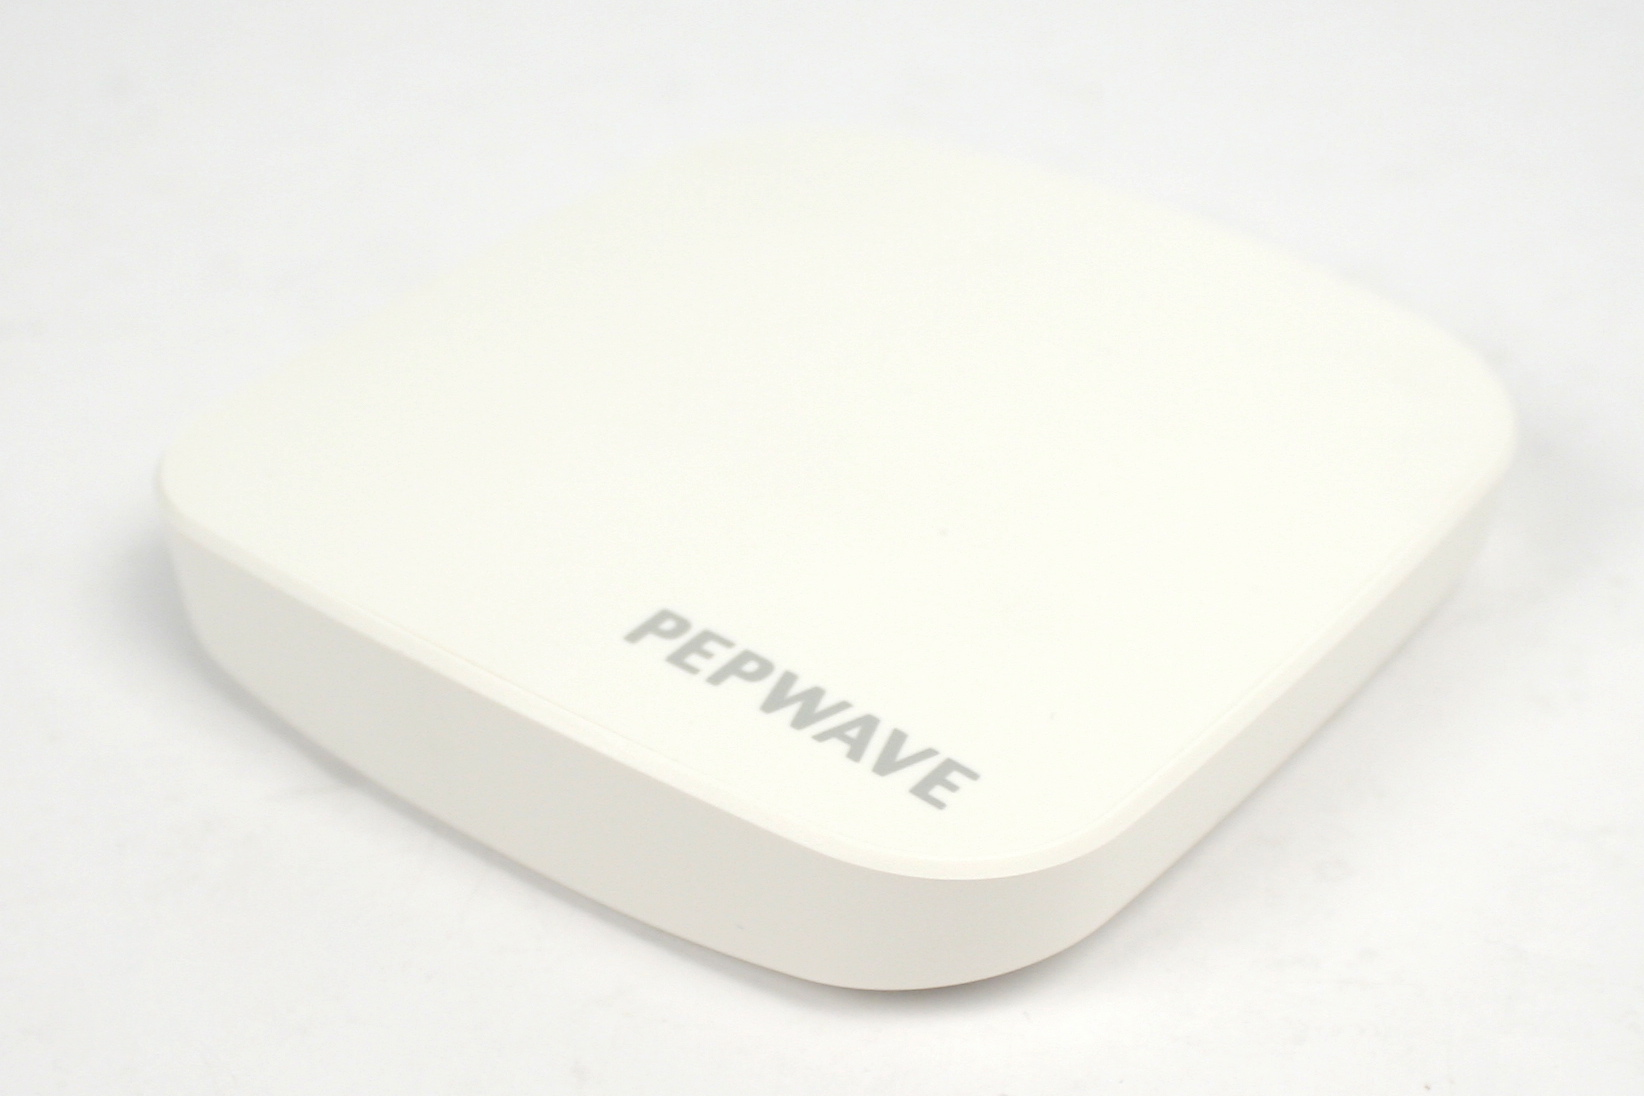 Pepwave AP One AC Mini (2.4GHz and 5.0GHz)